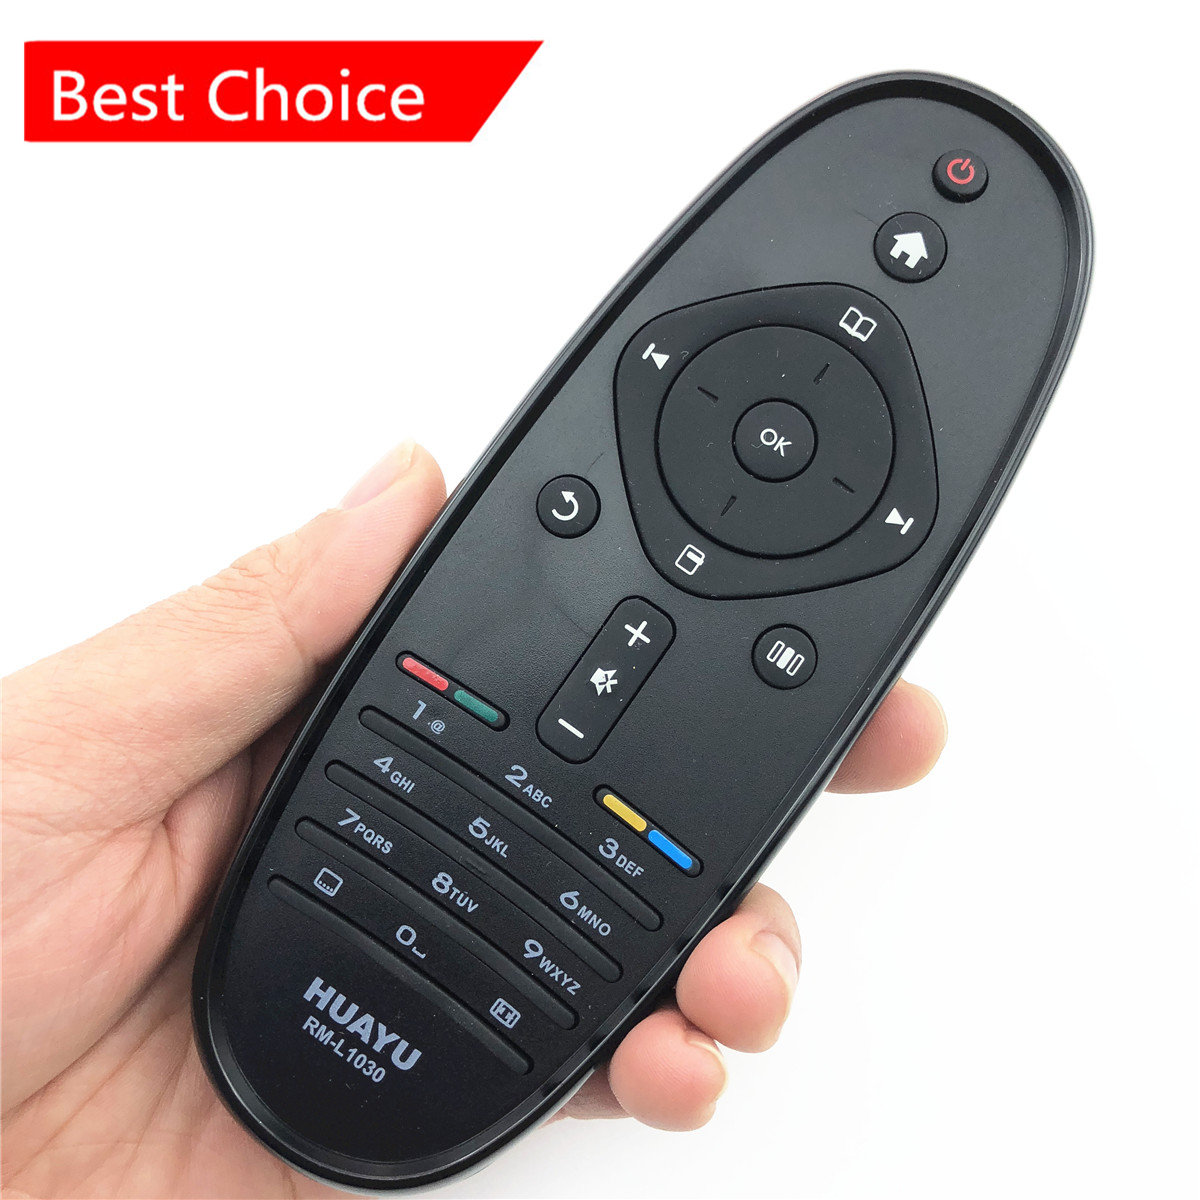 Controle remoto universal RM-L1030 para huayu/philips lcd smart tv hd 3d